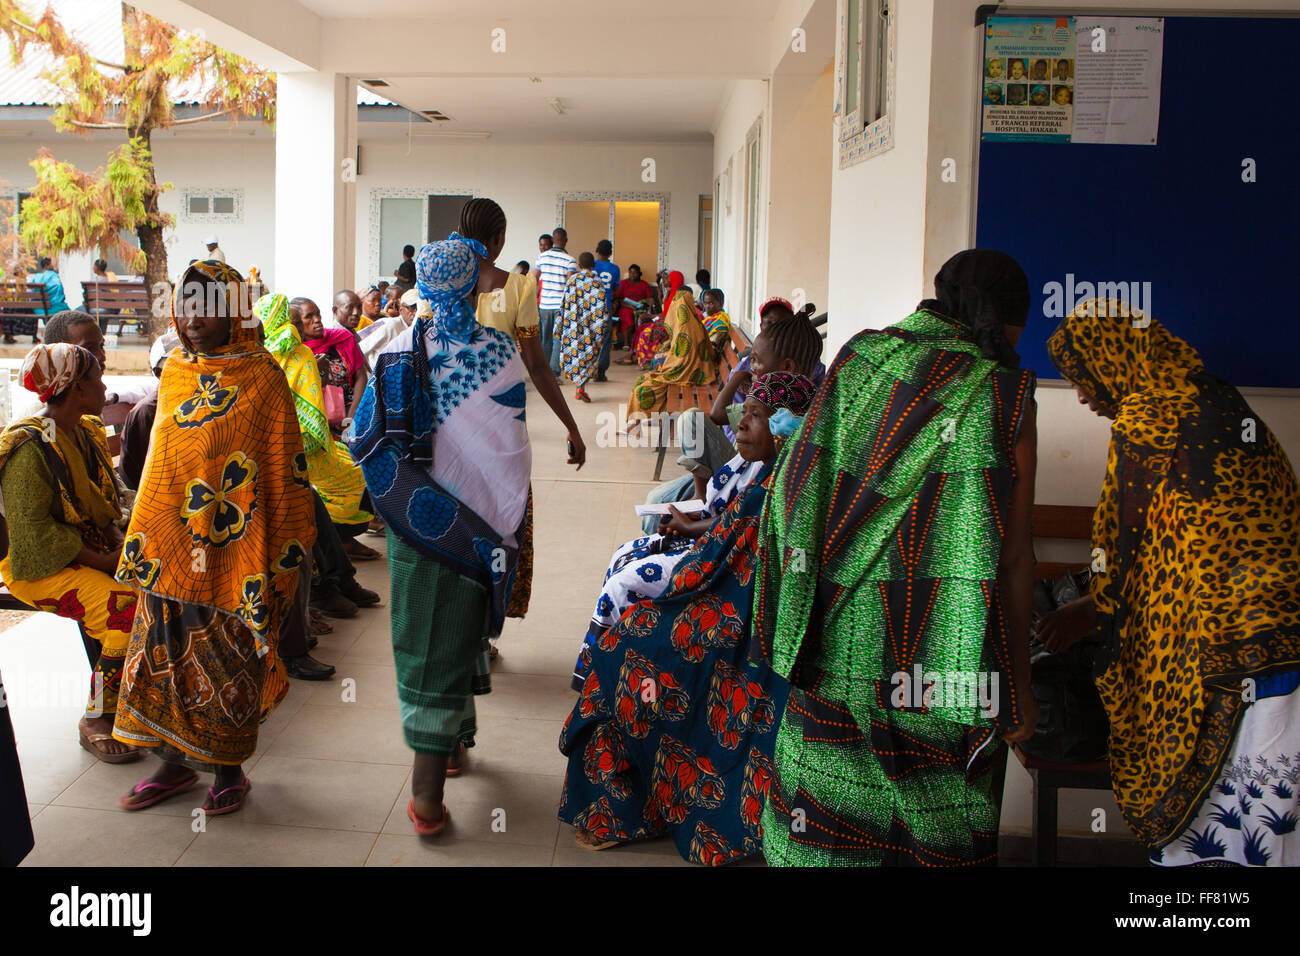 A busy Out Patient Department (OPD) at St. Francis Hospital, Ifakara, Tanzania. - Stock Image